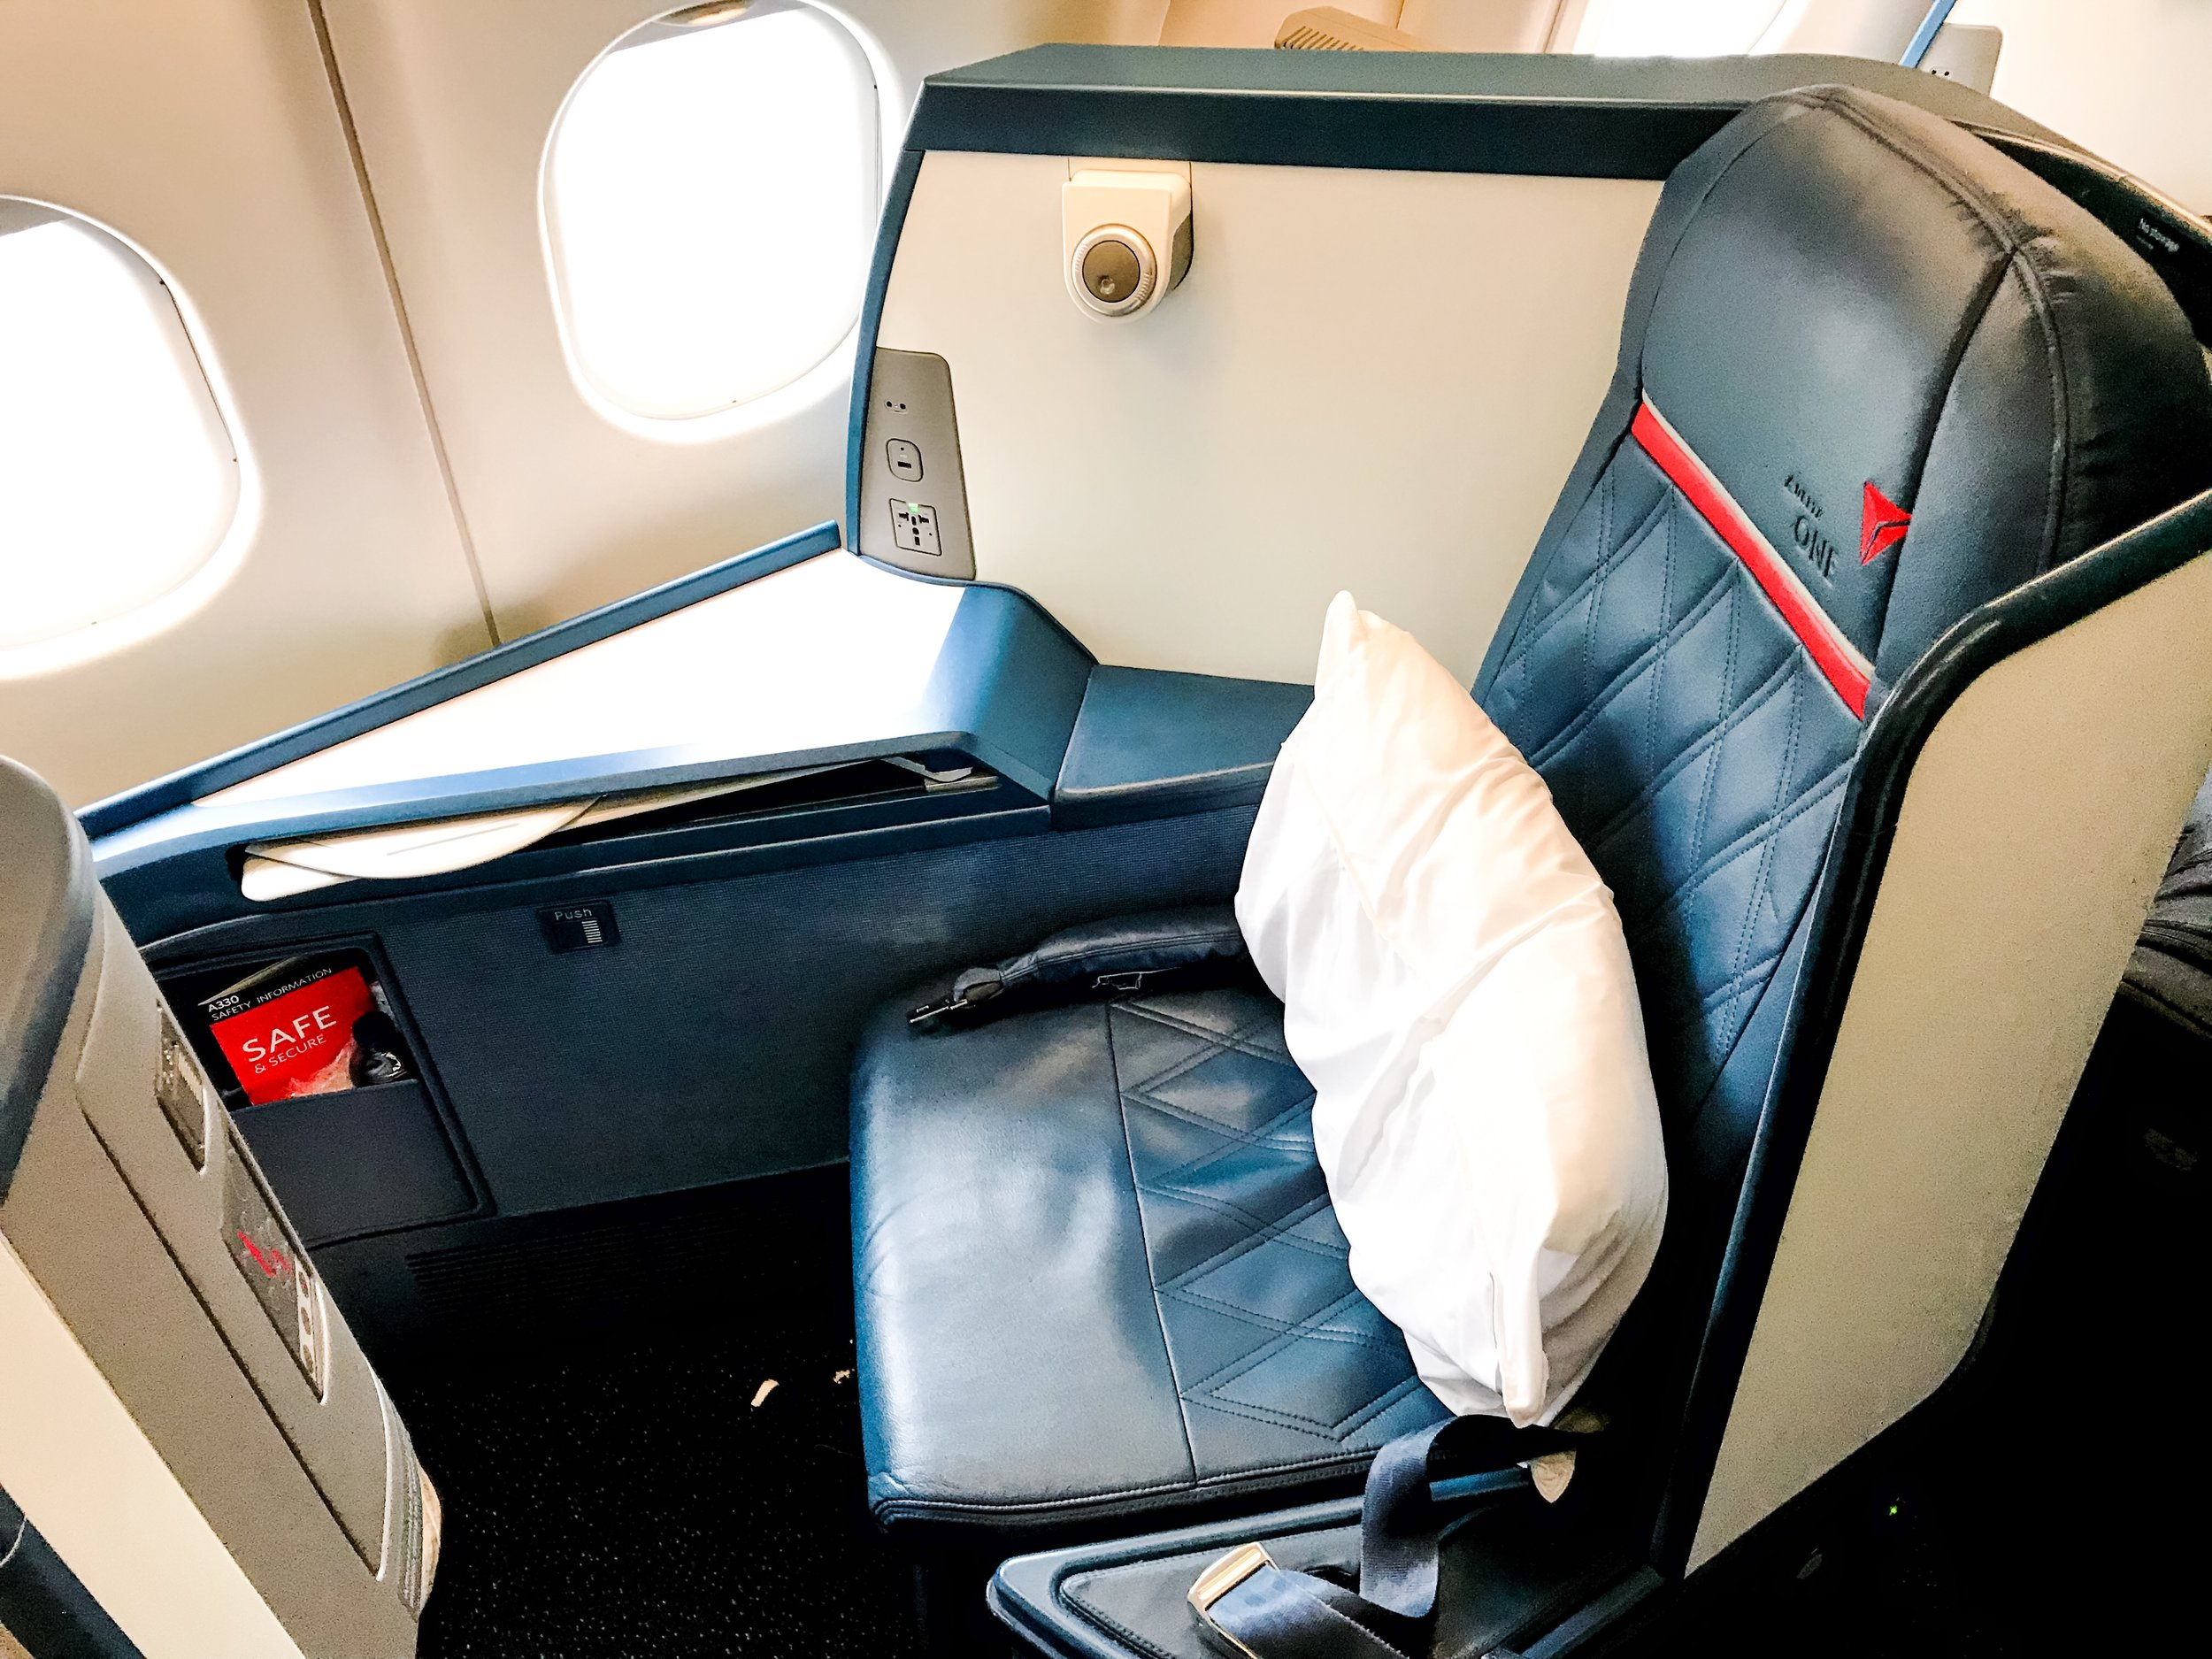 The seats are very comfortable and have ample space to place small personal belongings. That is a frequent complaint about some premium cabins.